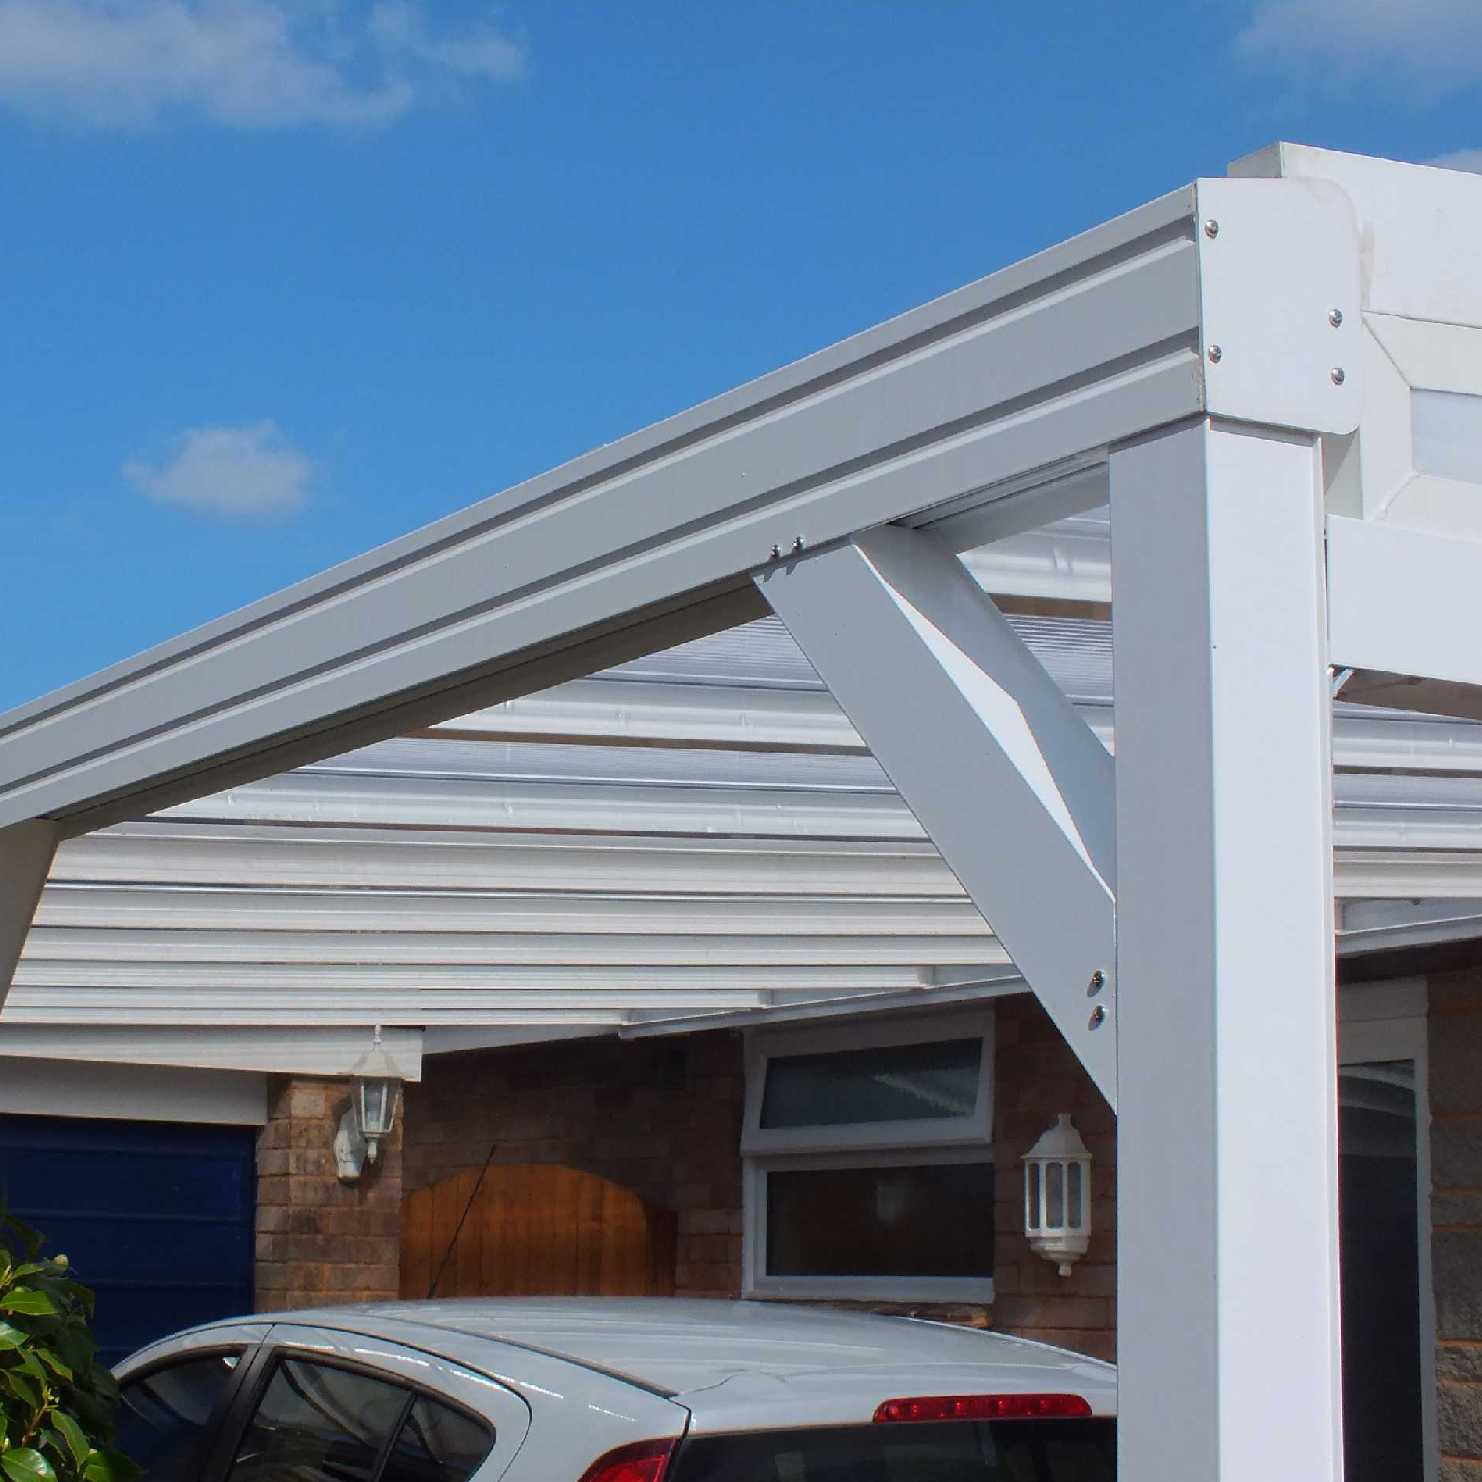 Great deals on Omega Smart Lean-To Canopy with 16mm Polycarbonate Glazing - 2.1m (W) x 3.5m (P), (2) Supporting Posts